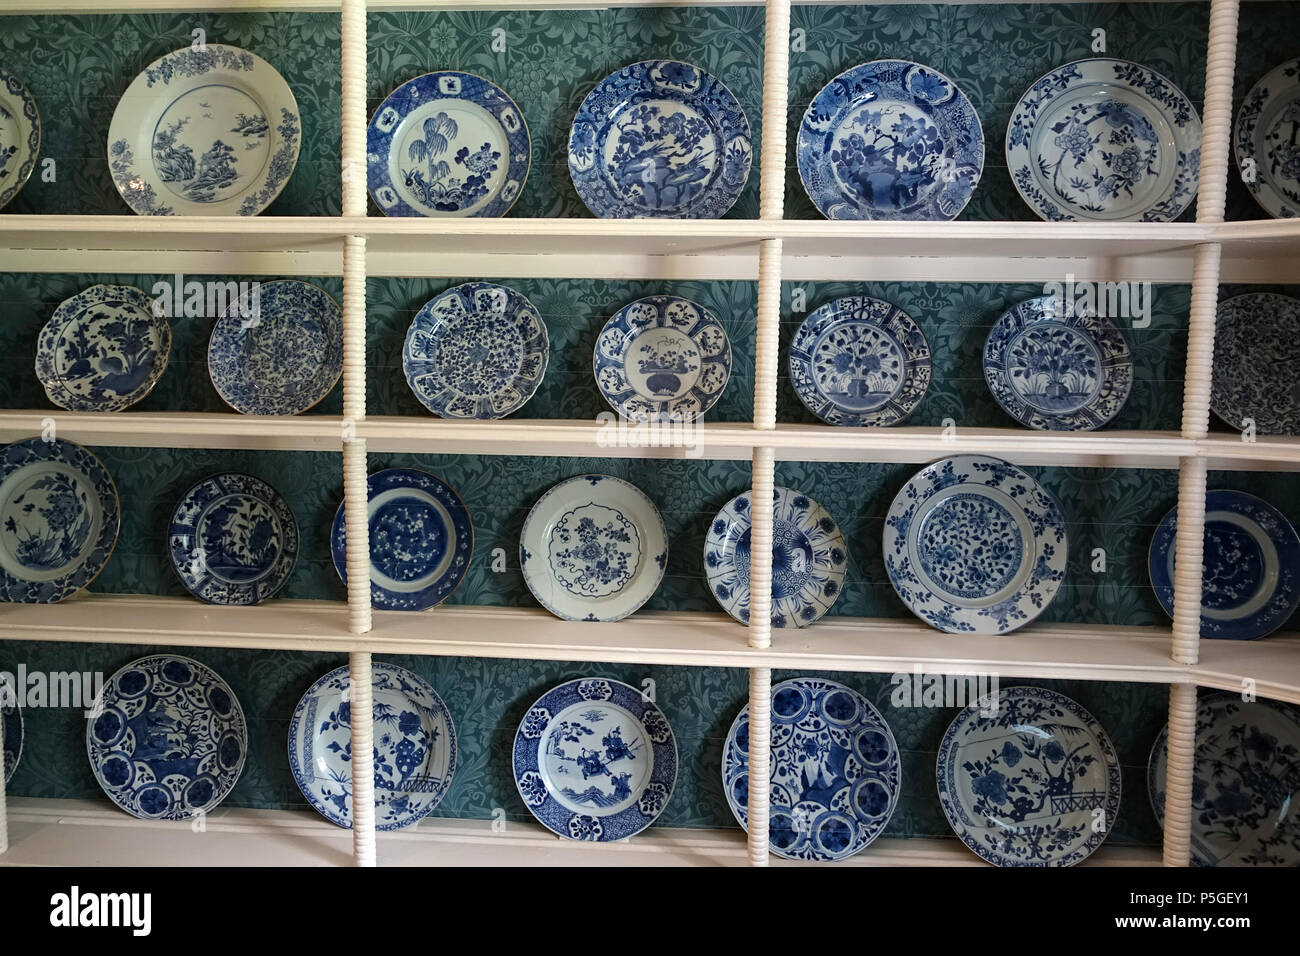 N A English Item On Display In Kelmscott Manor Oxfordshire England 25 May 2016 07 57 03 Daderot 211 Blue And White Plates Chinese Japanese And Dutch Ceramic Kelmscott Manor Oxfordshire England Dsc00016 Stock Photo Alamy